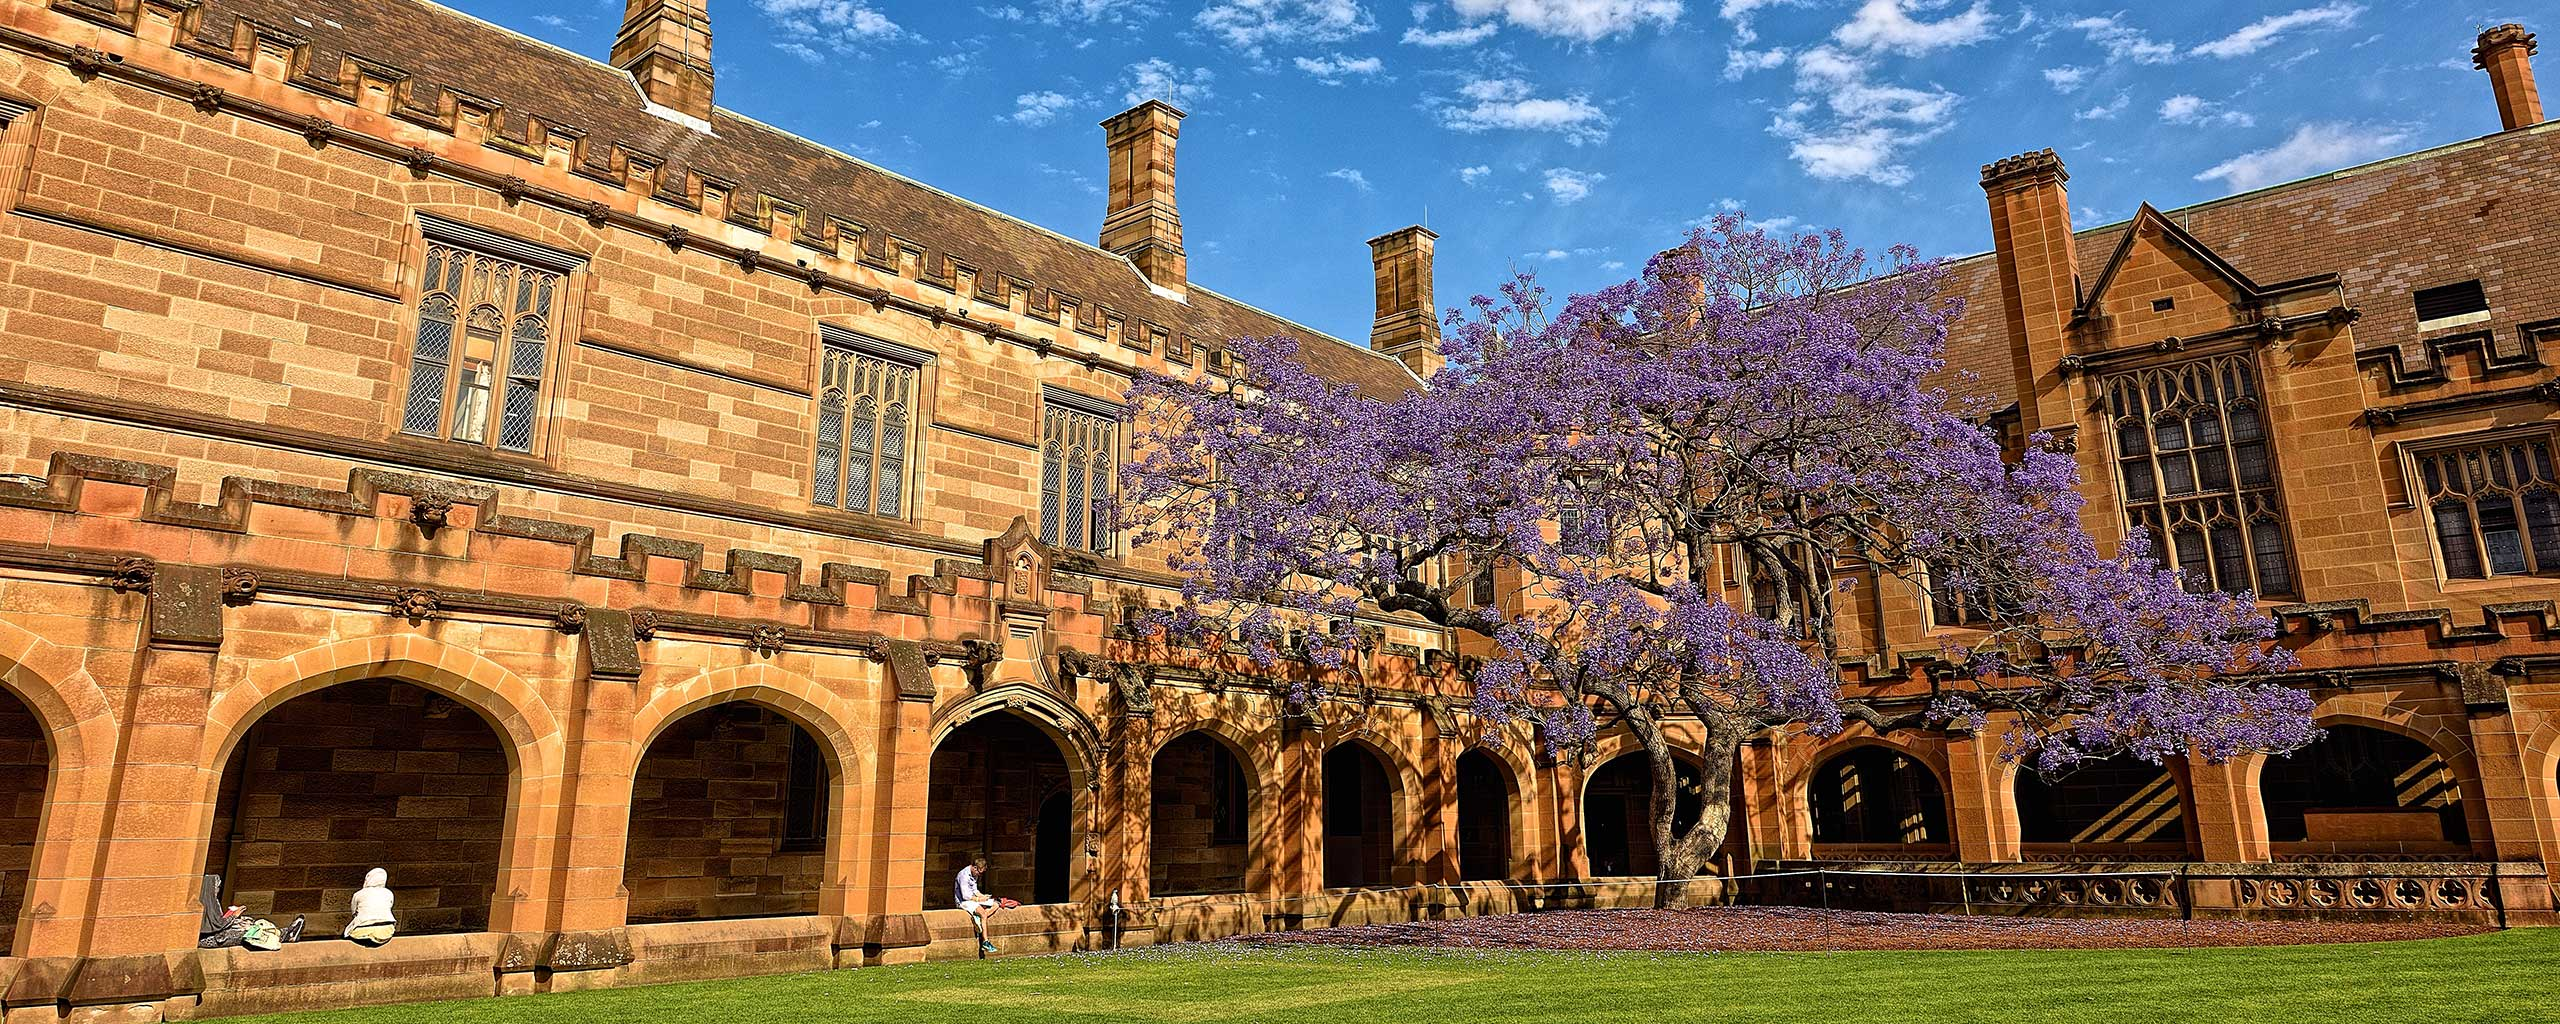 University of Sydney Quadrangle building with purple tree in courtyard